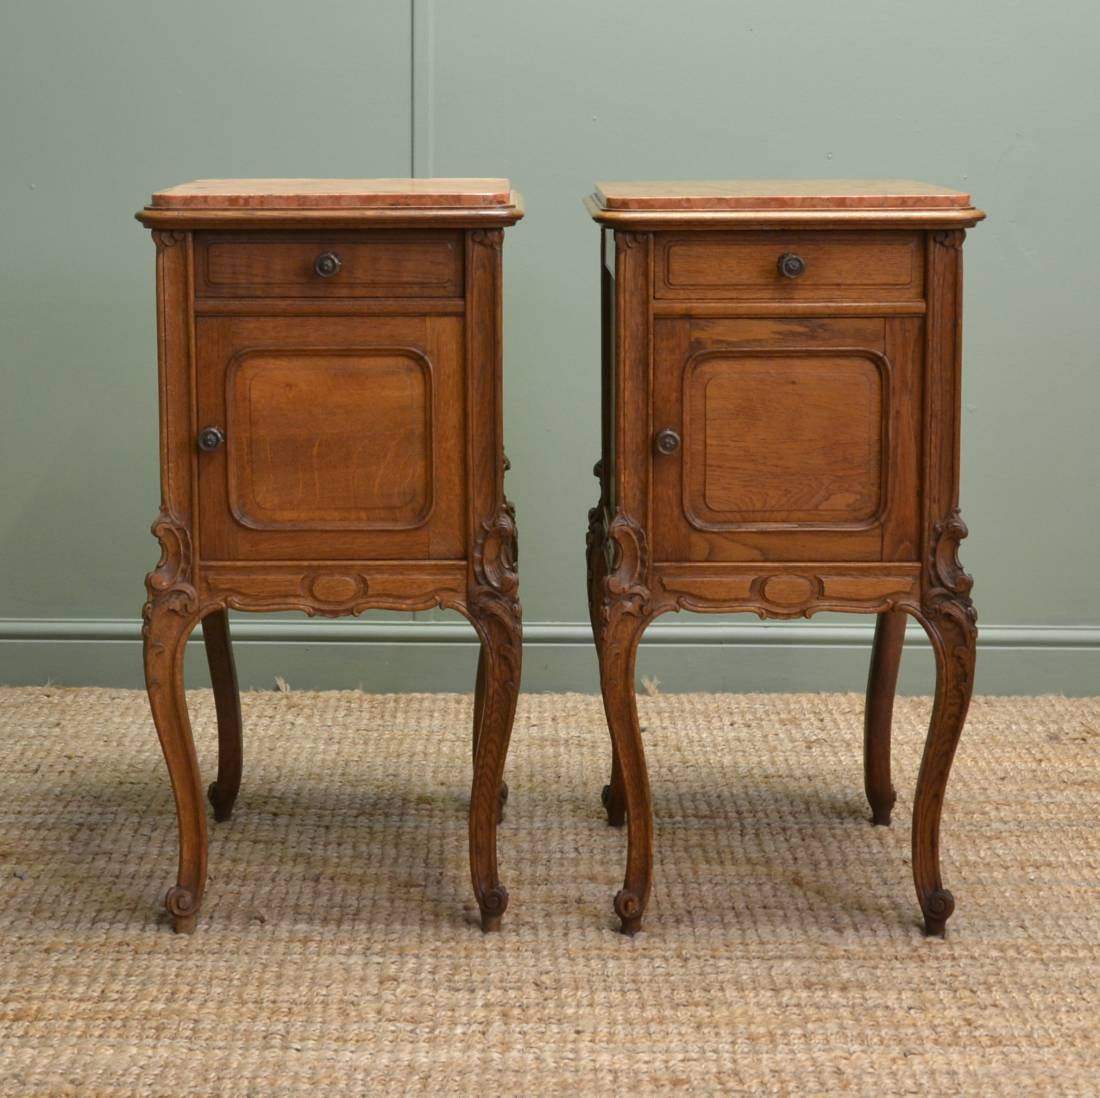 Antique Bedside Cabinets Antiques World